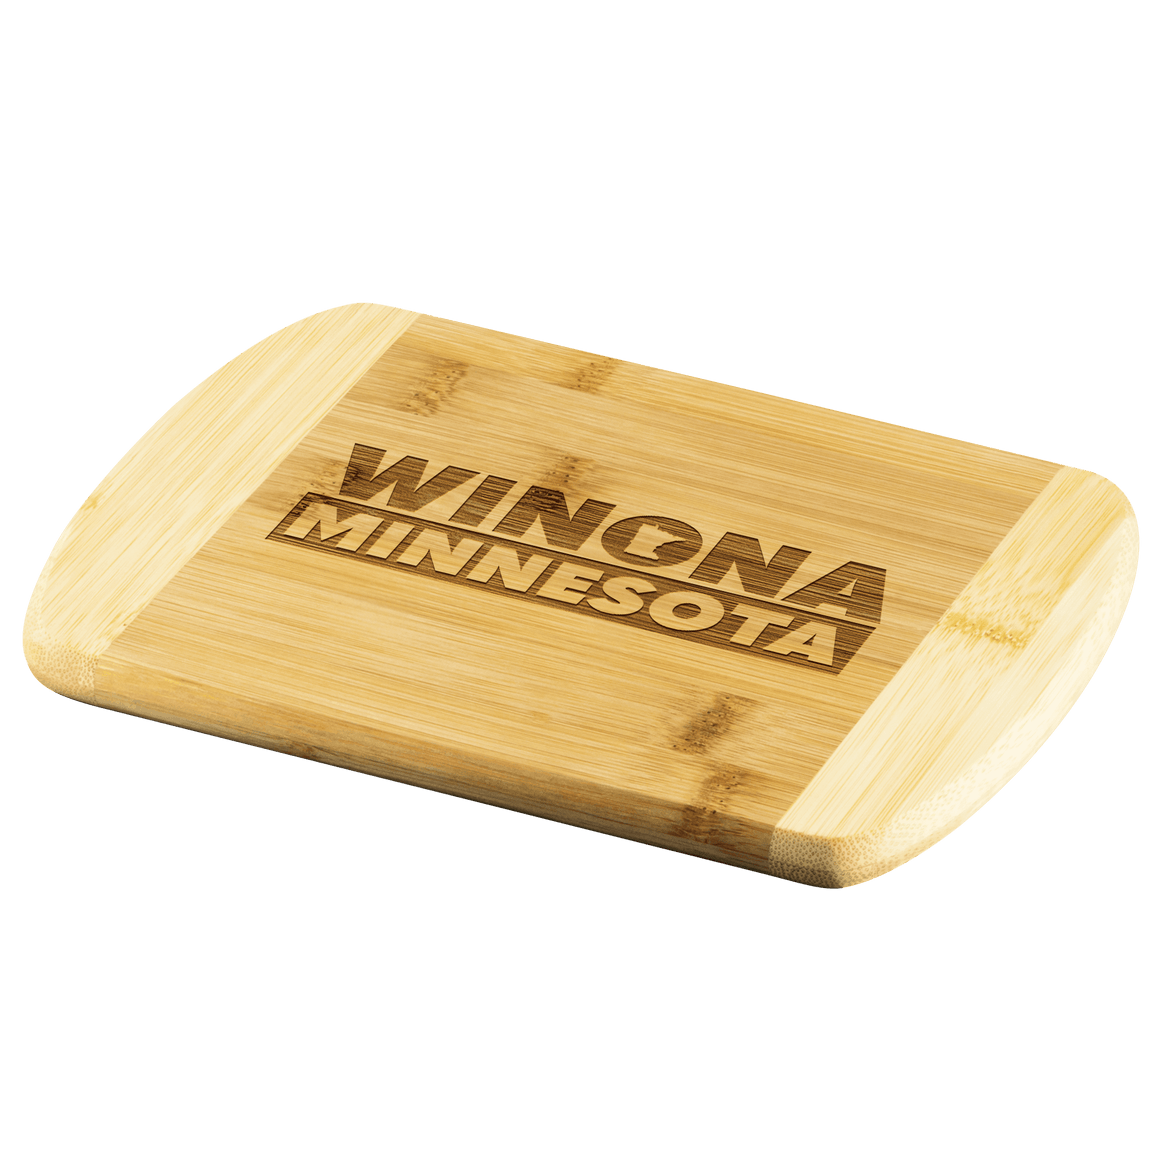 Winona Minnesota Cutting Board, State Shape In O - Kari Yearous Photography WinonaGifts KetoGifts LoveDecorah